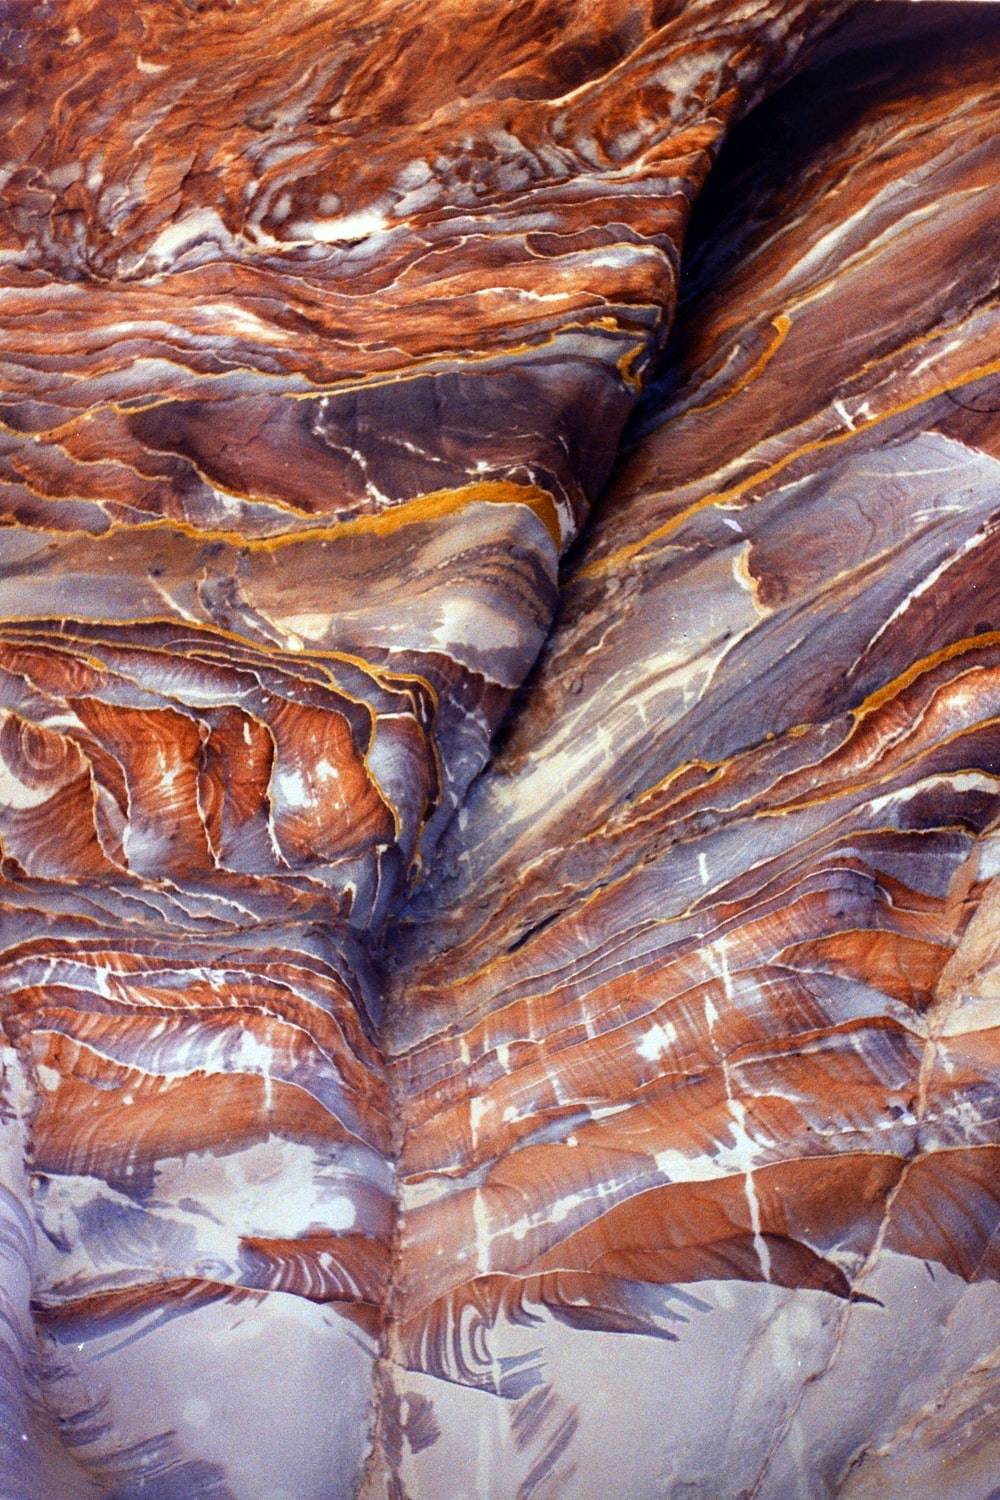 brown and white rock formation